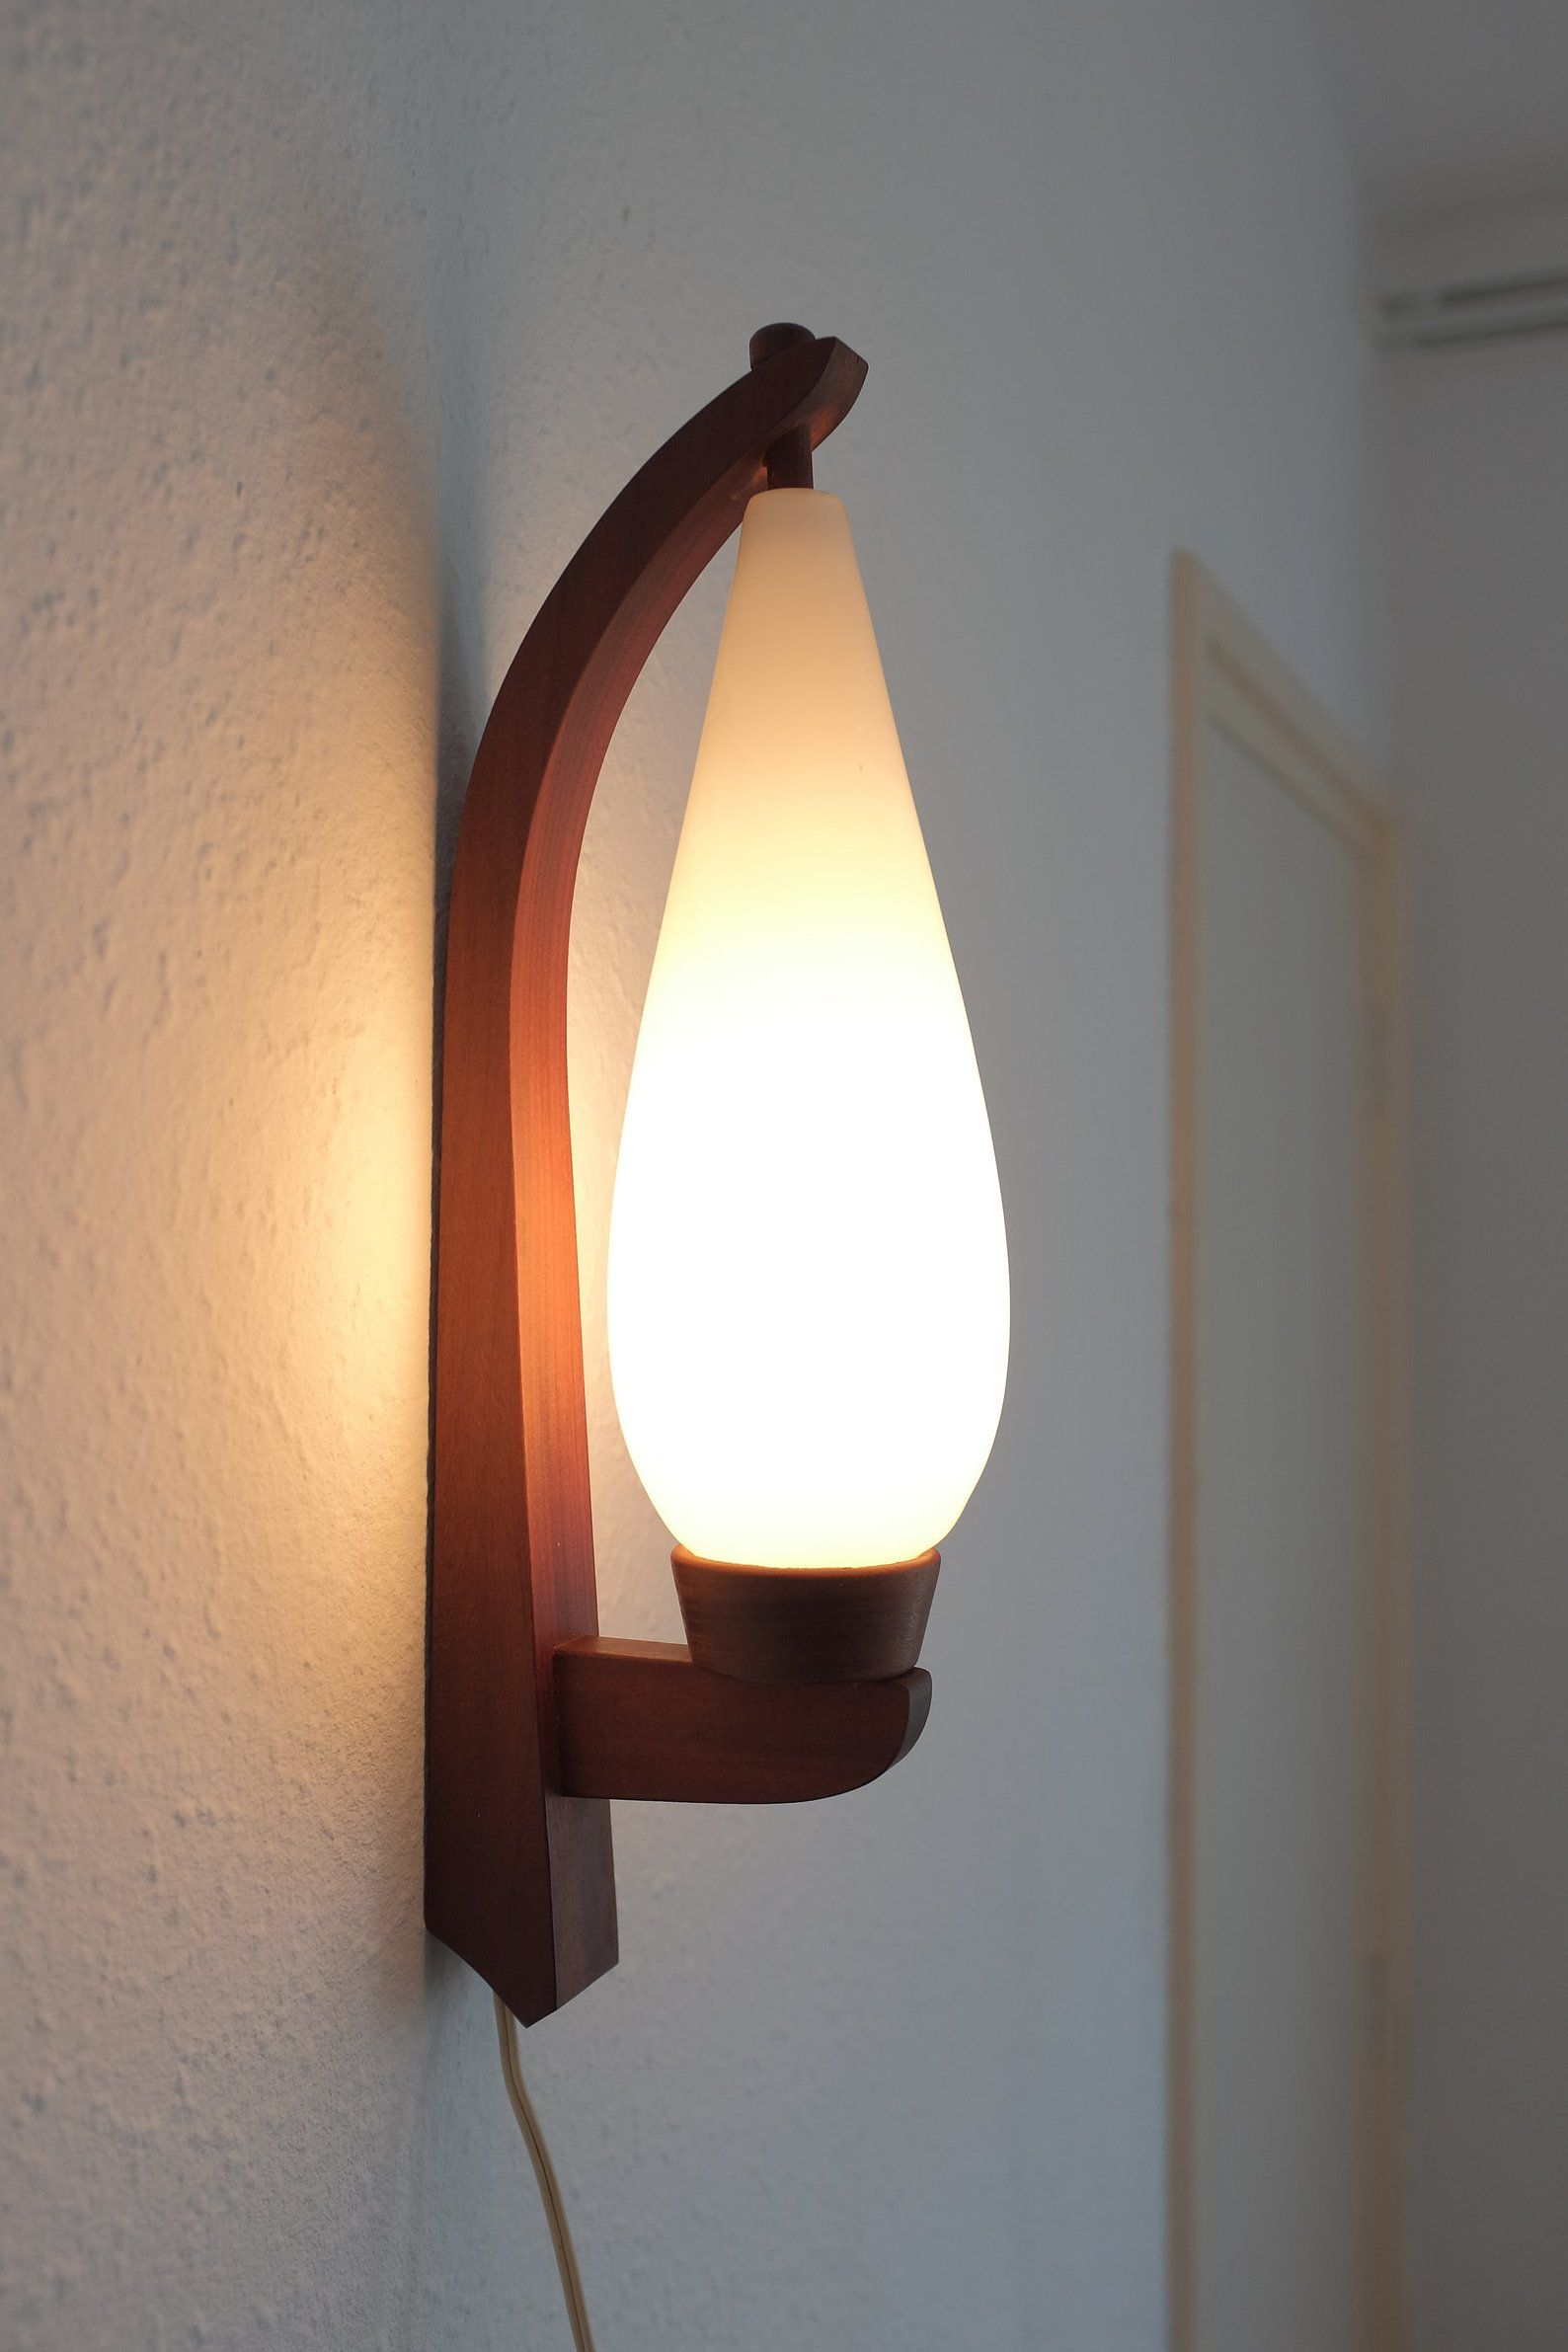 Teak Wooden Wall Lamp Very Rare Vintage Wall Mounted Lamp 60s Wall Lamp Danish Design Frosted Glass Satin Milk Glass Wall Mounted Lamps Wall Lamp Mid Century Modern Wall Lamp